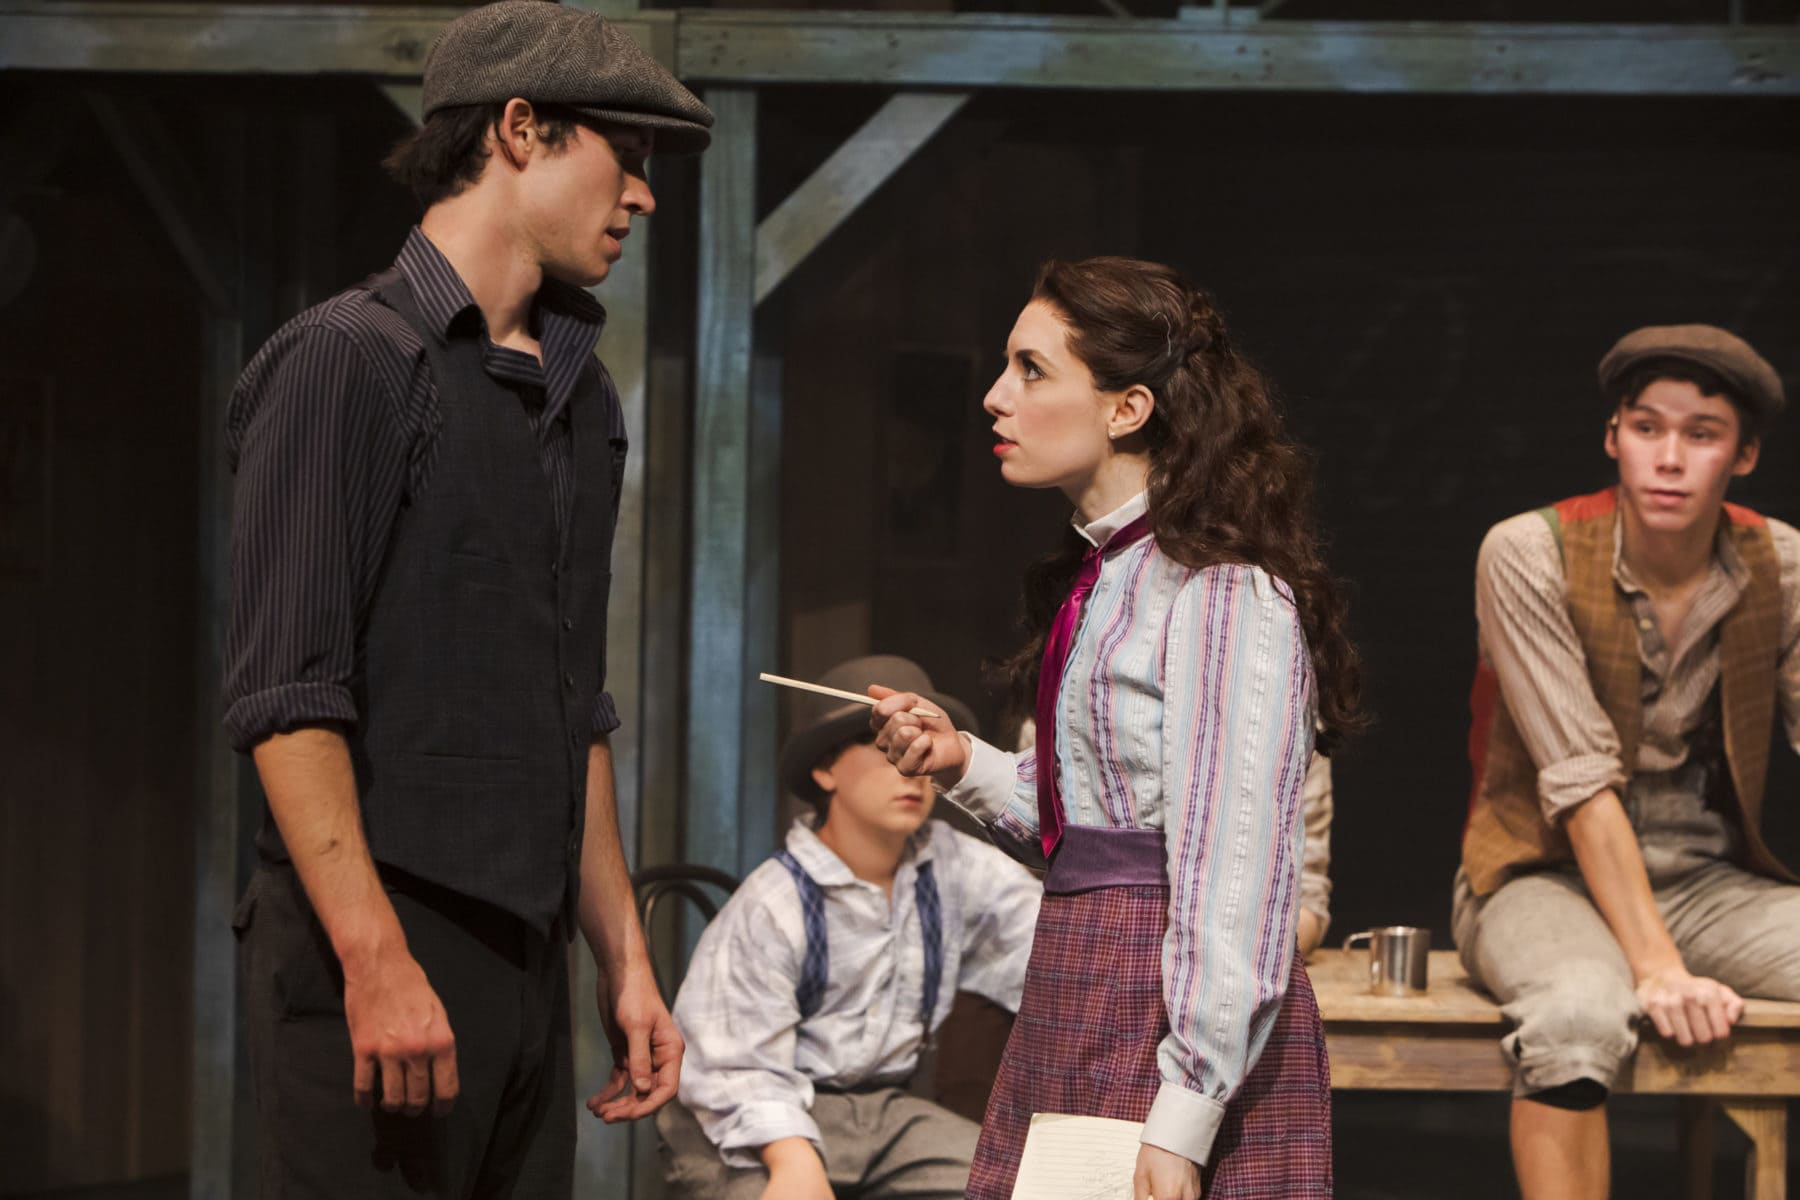 """Melissa Momboisse, as Katherine Plumber, questions Kamren Mahaney, as Jack Kelly, as she searches for her next story in """"Newsies"""" at Hillbarn Theatre."""